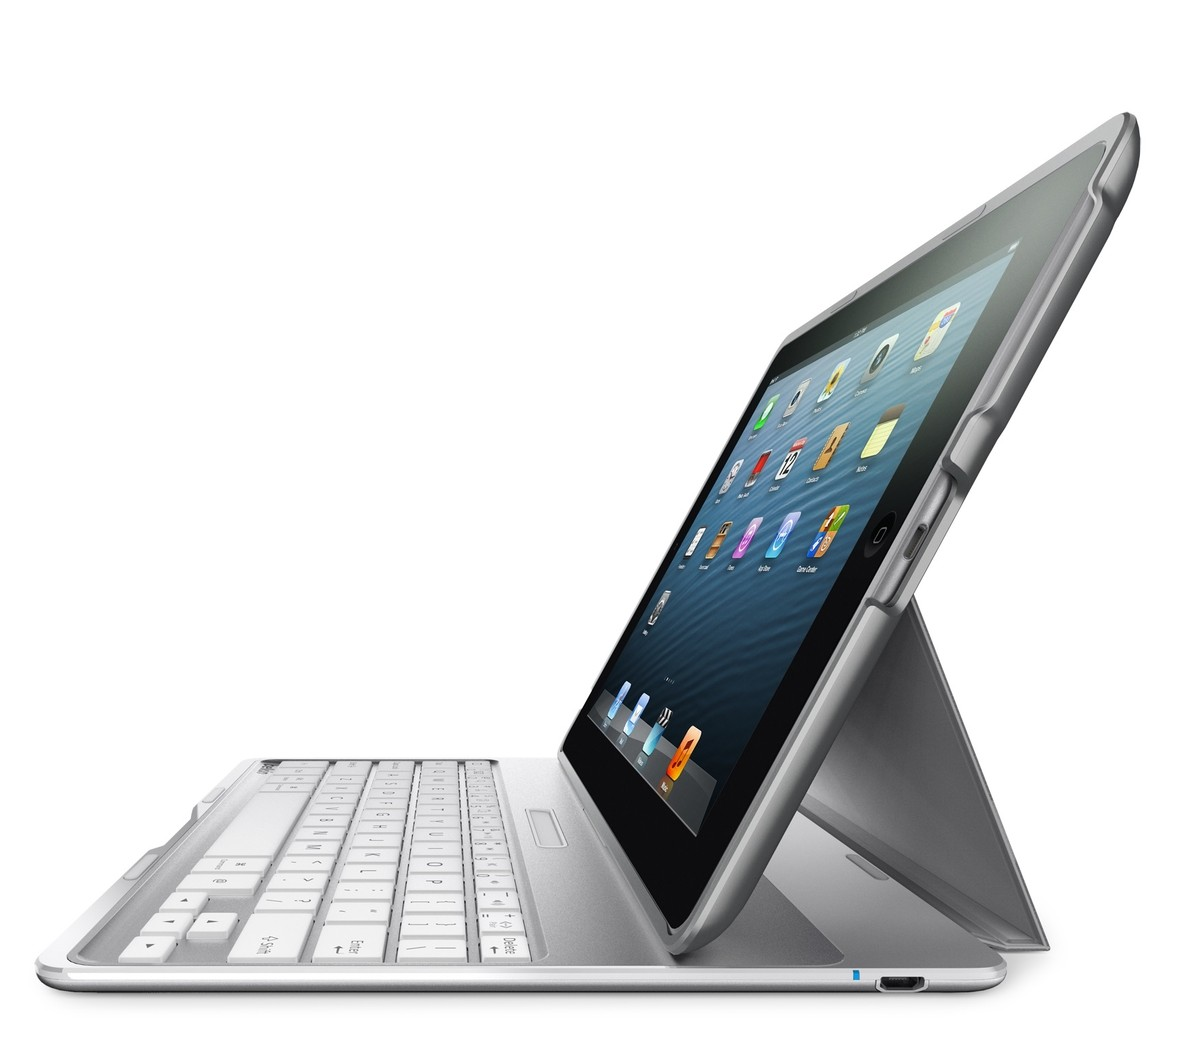 Belkin officially launches its Ultimate Keyboard Case for iPad, thinnest keyboard case available